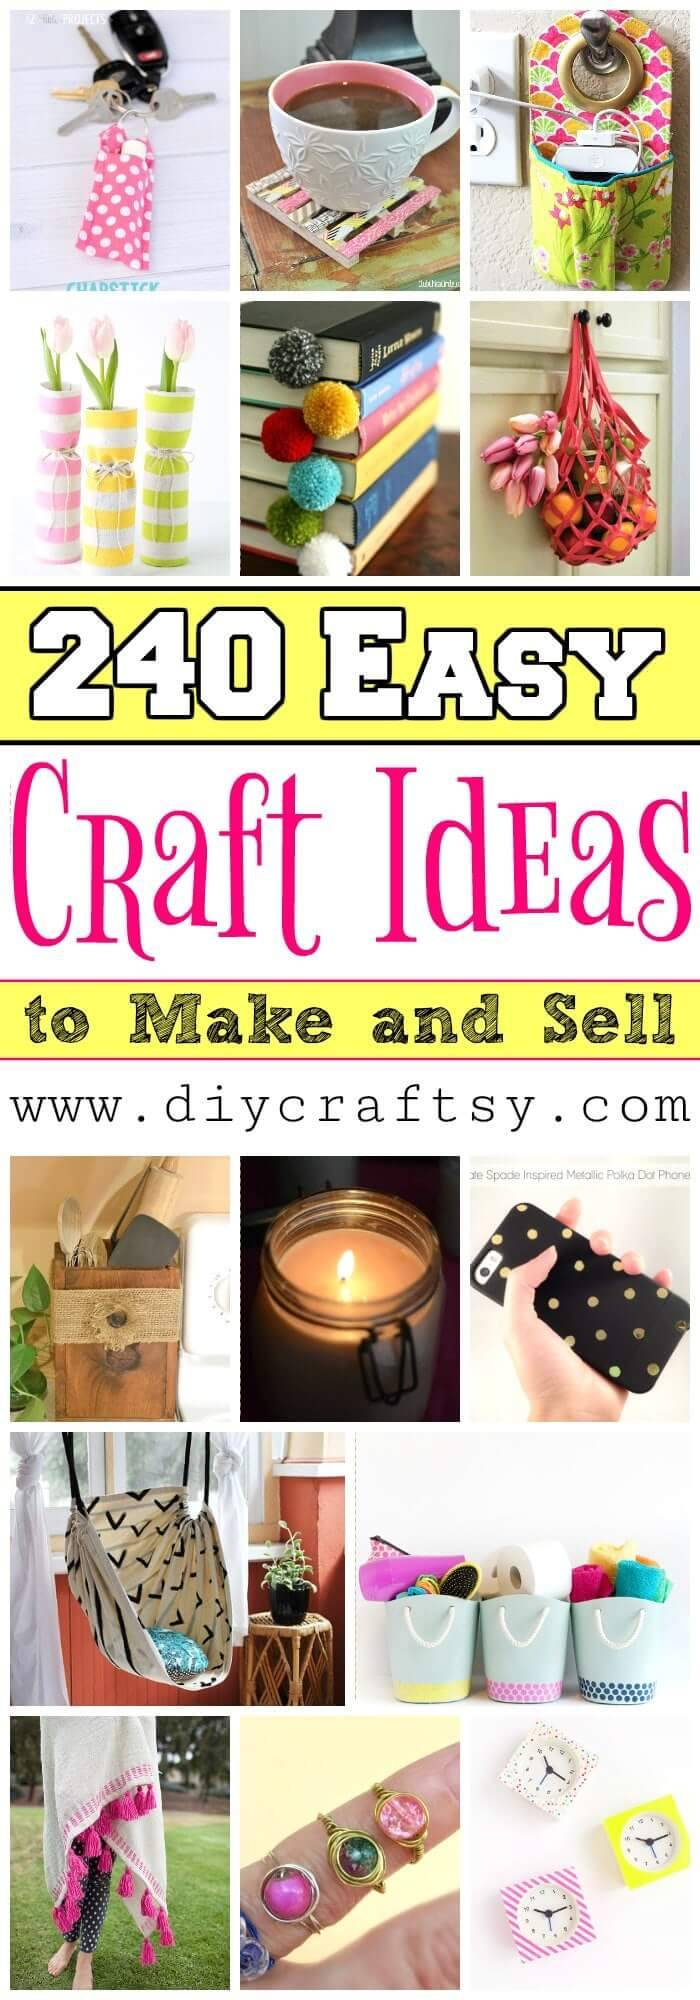 240 easy craft ideas to make and sell diy crafts for Top selling crafts 2017